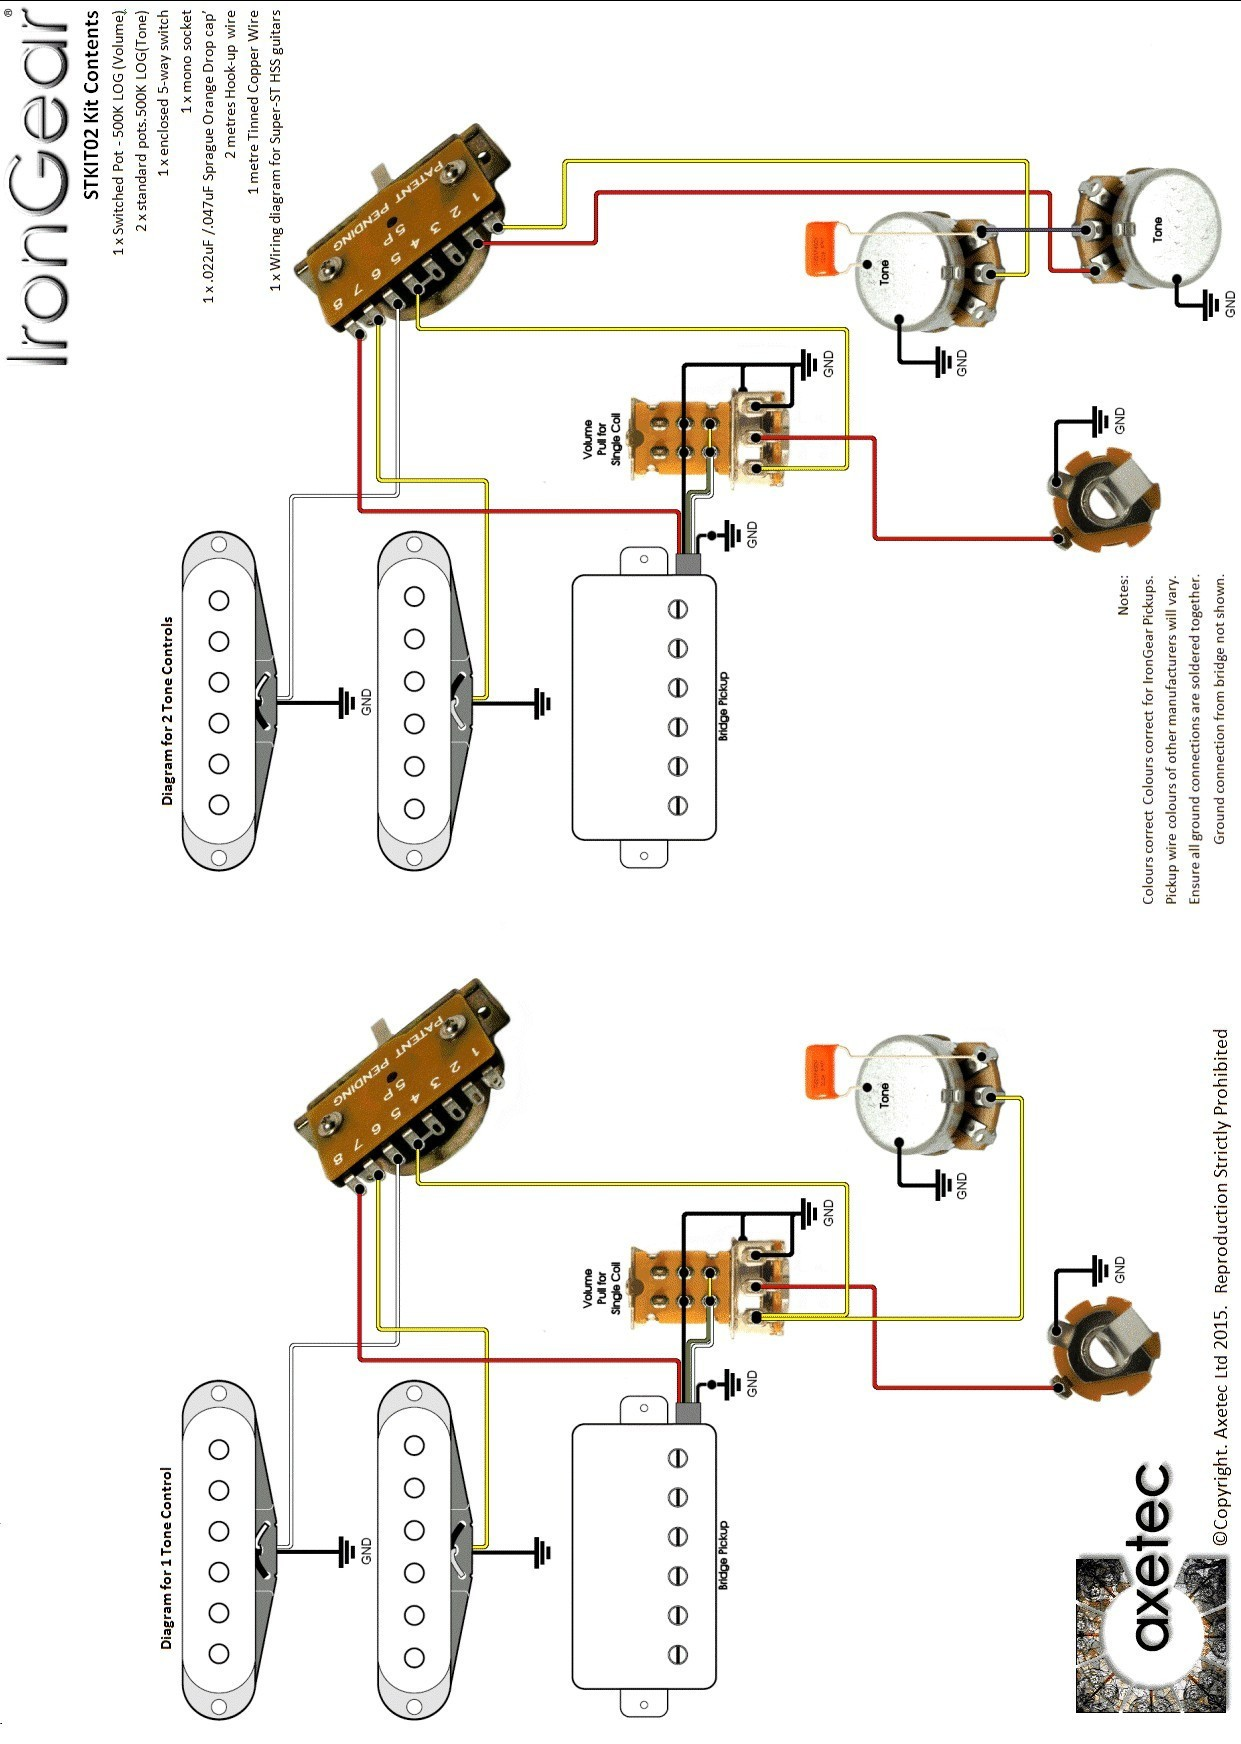 wiring diagram for electric guitar wiring library japan strat wiring diagrams emg strat wiring diagrams #8